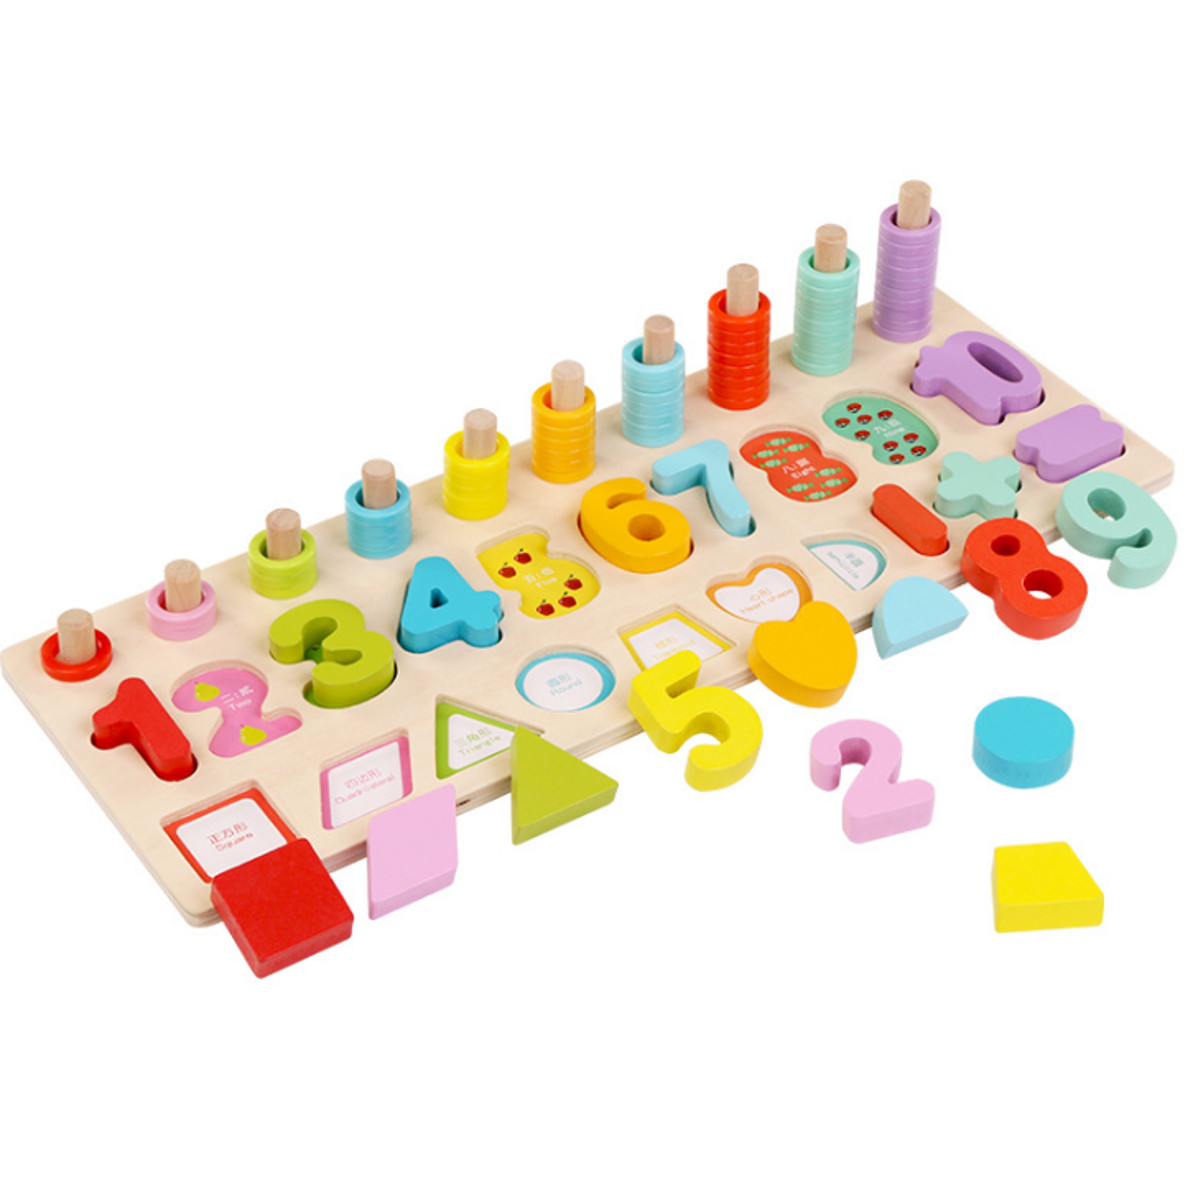 Kids Wooden Math Puzzle Toys Numbers Learning Hand-Eye ...